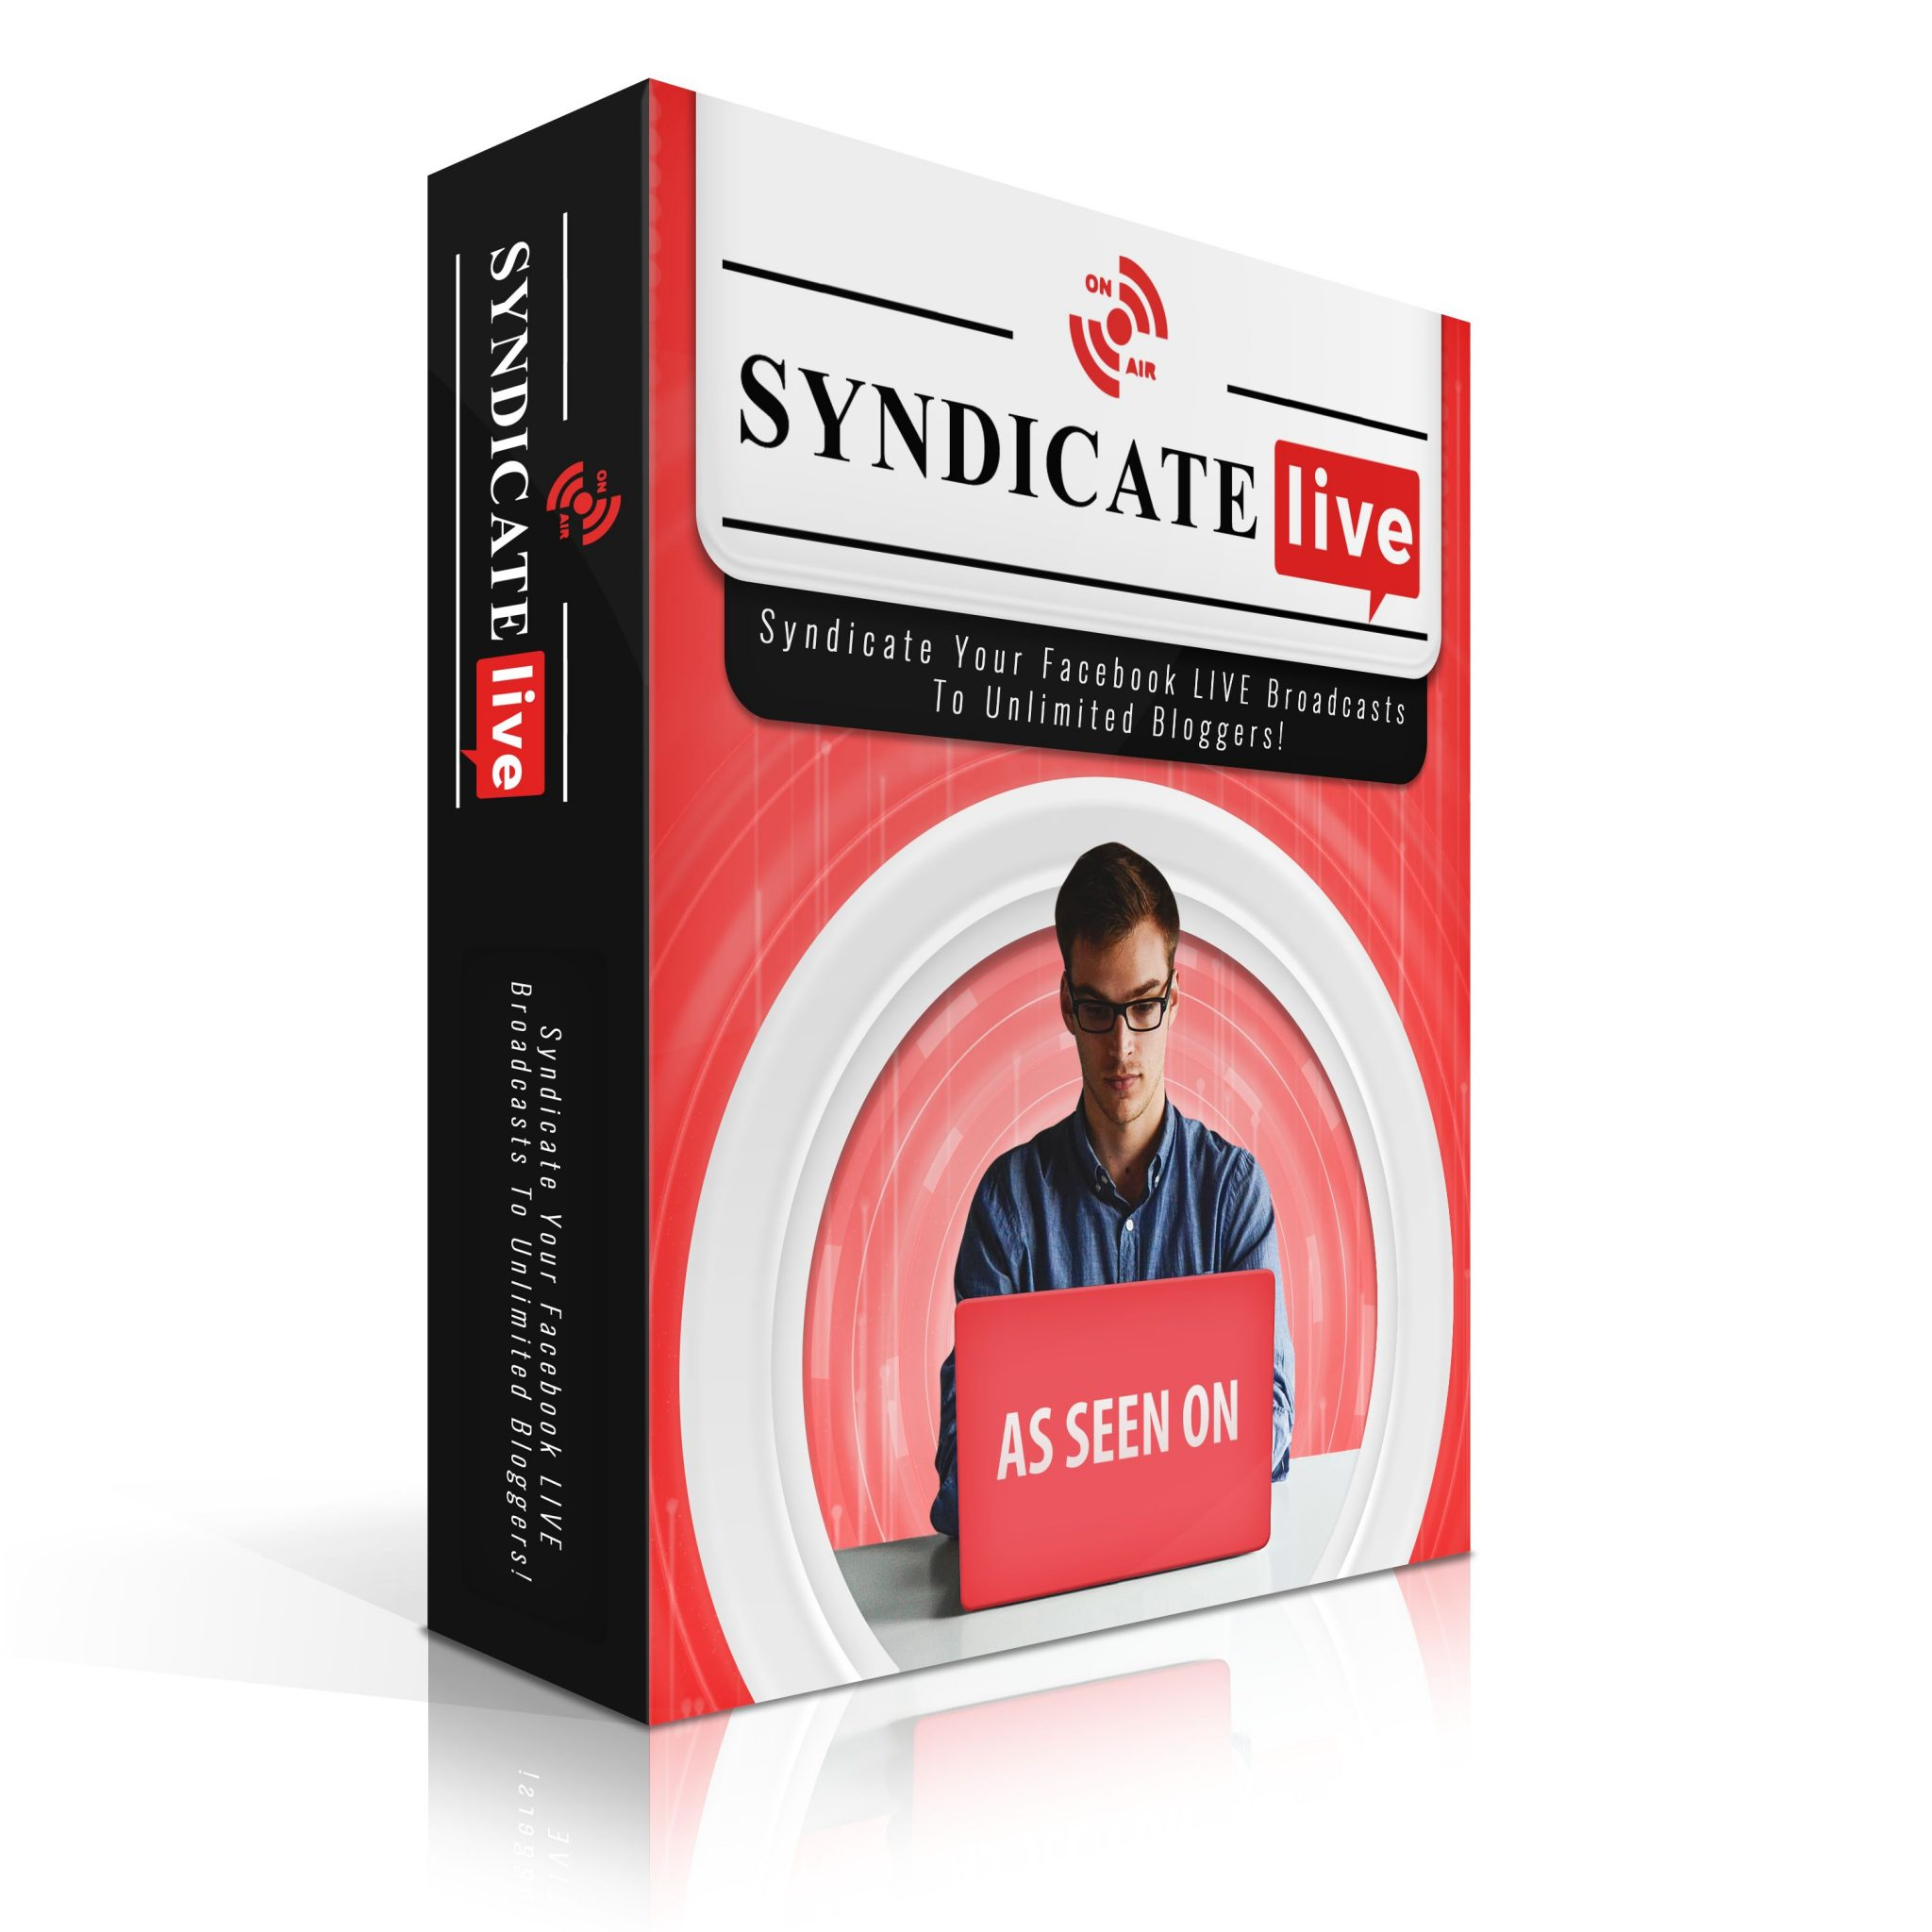 Syndicate Live